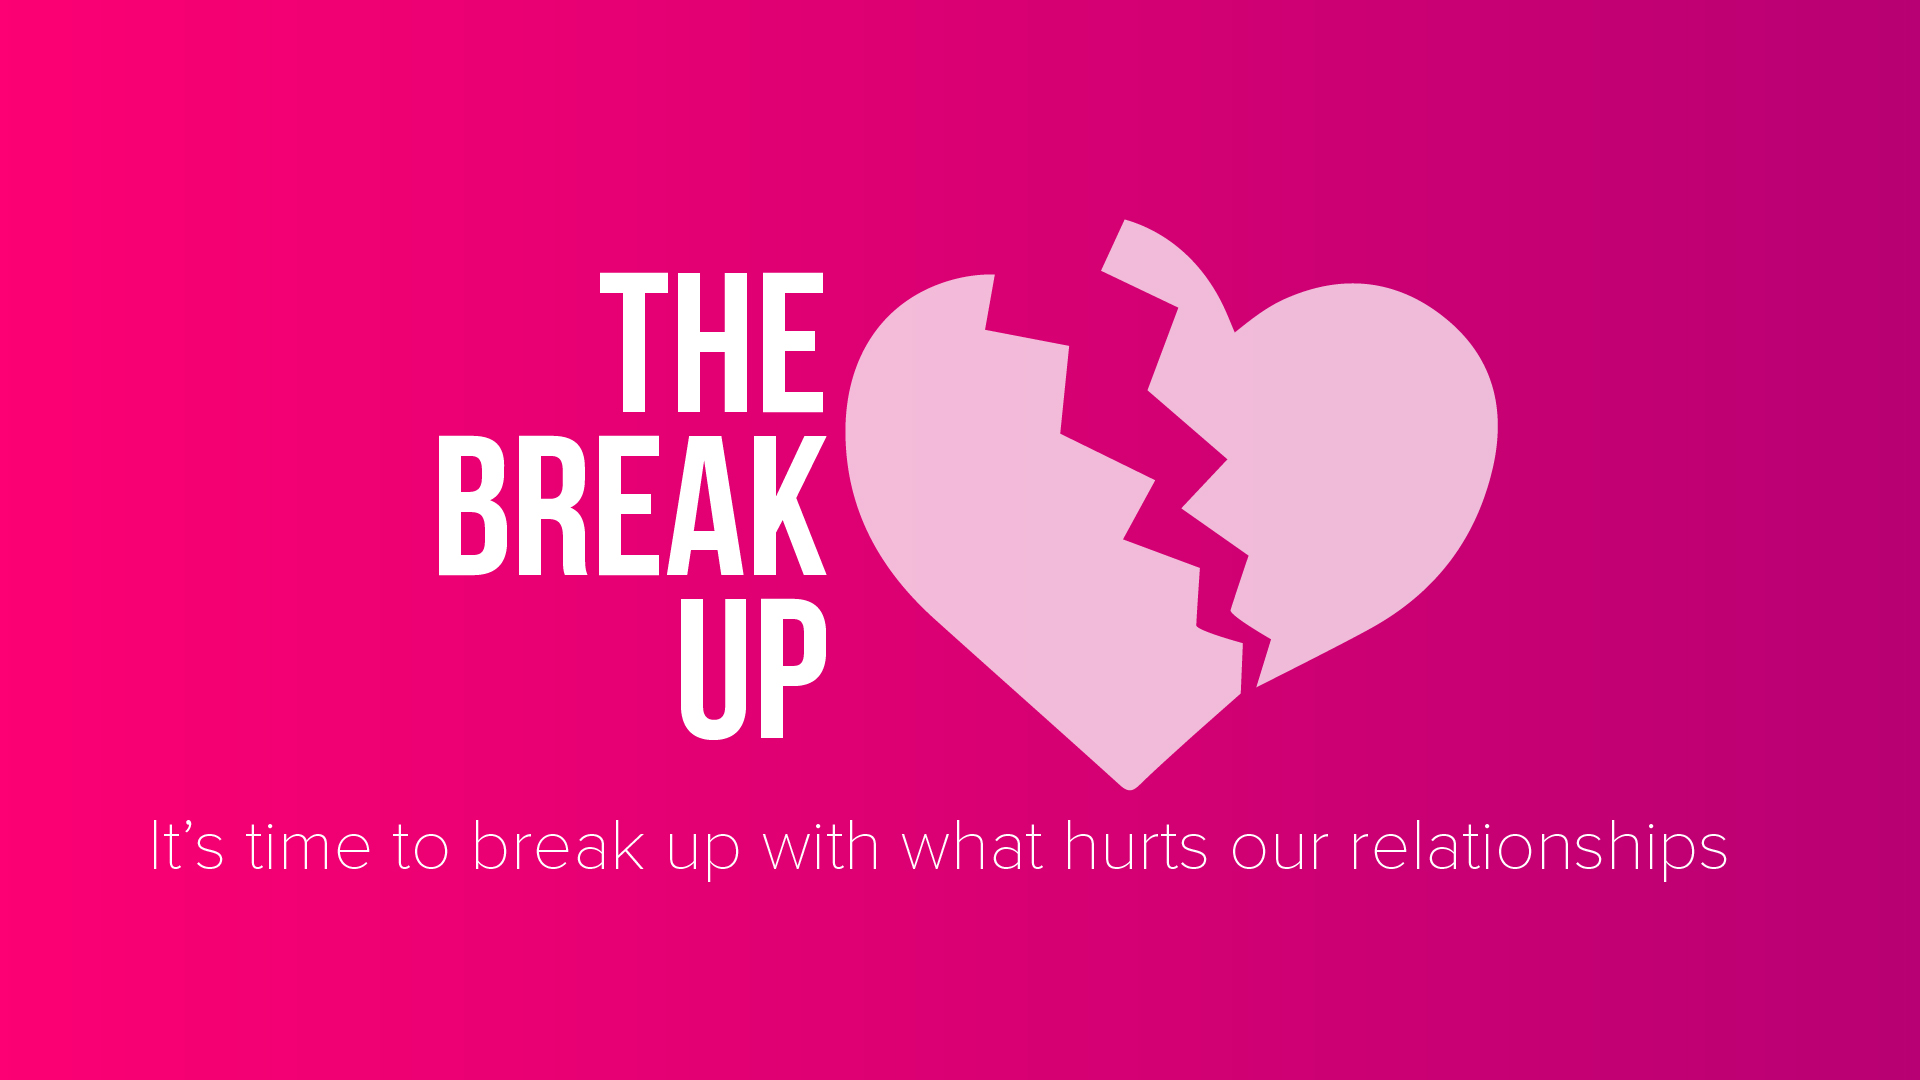 The Break Up w tagline-01.jpg